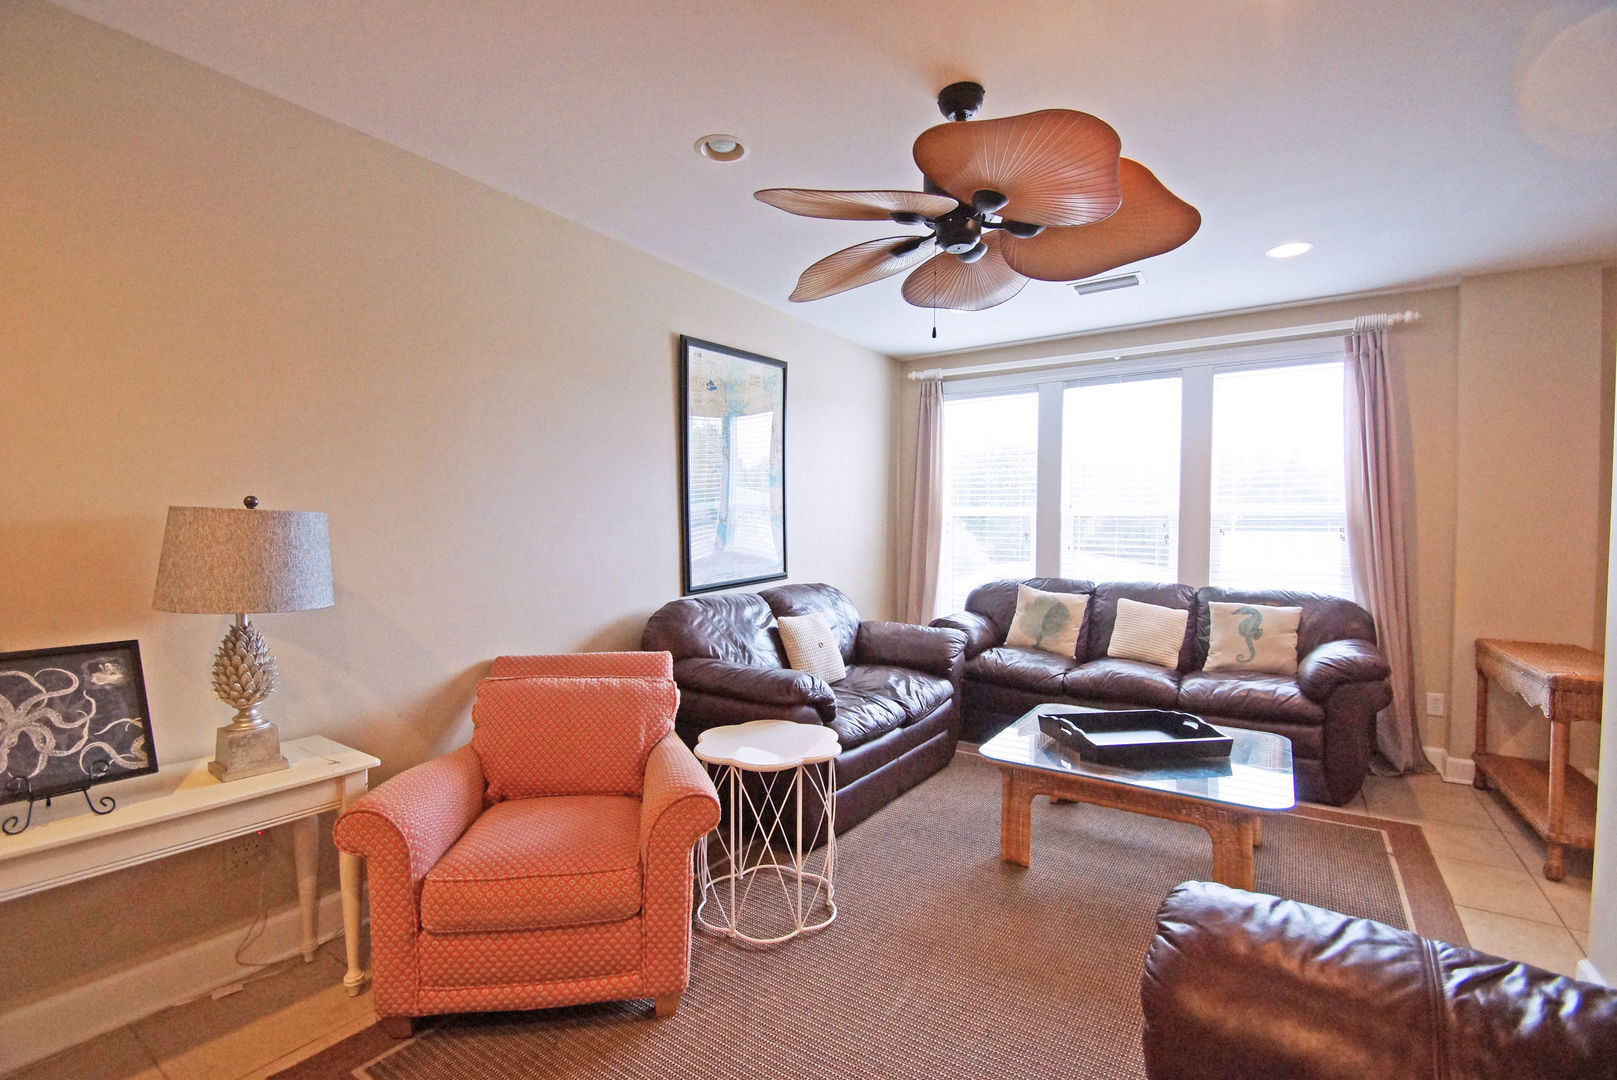 Arm Chair, Console Table, Lamp, Sofas, Coffee Table, and Ceiling Fan.